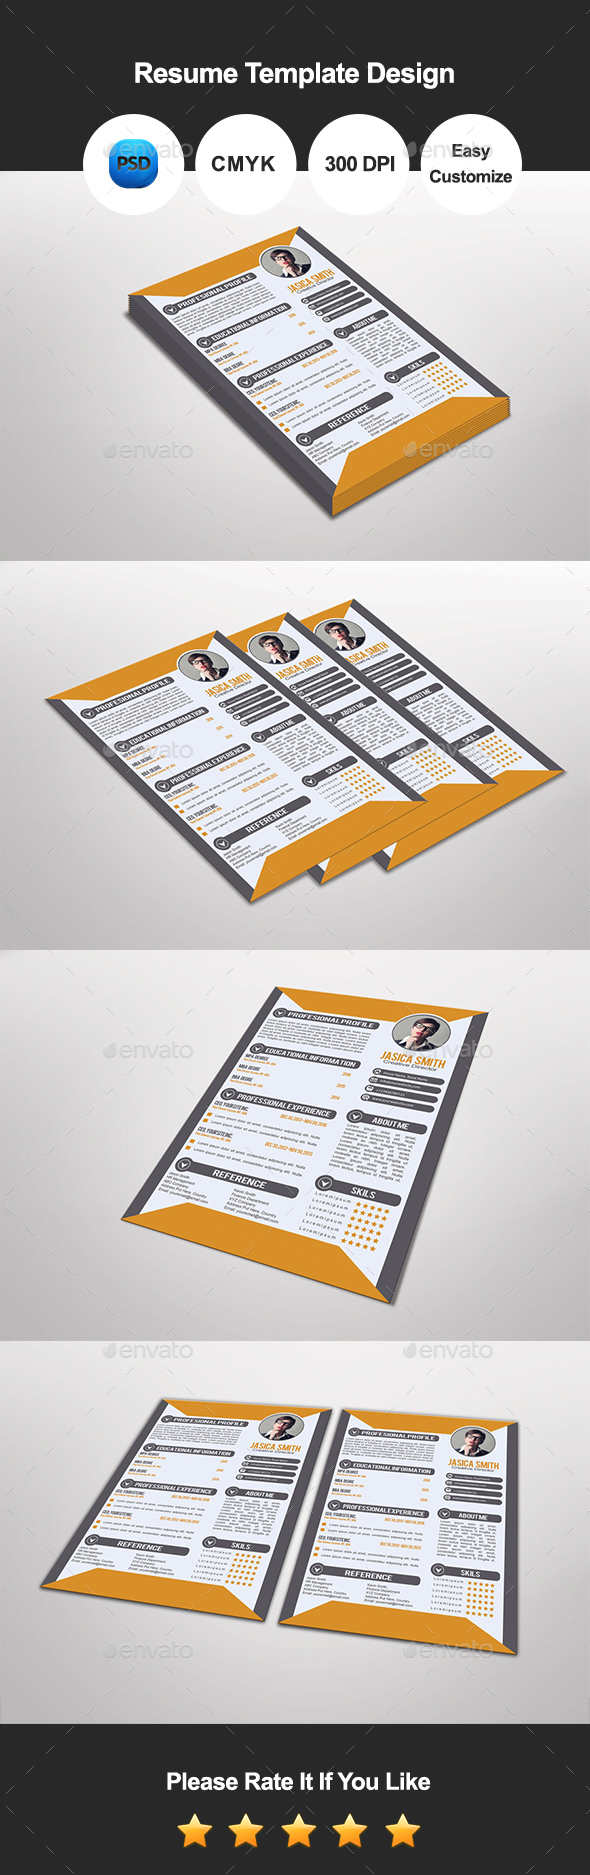 Anlix Resume Template Design - Resumes Stationery